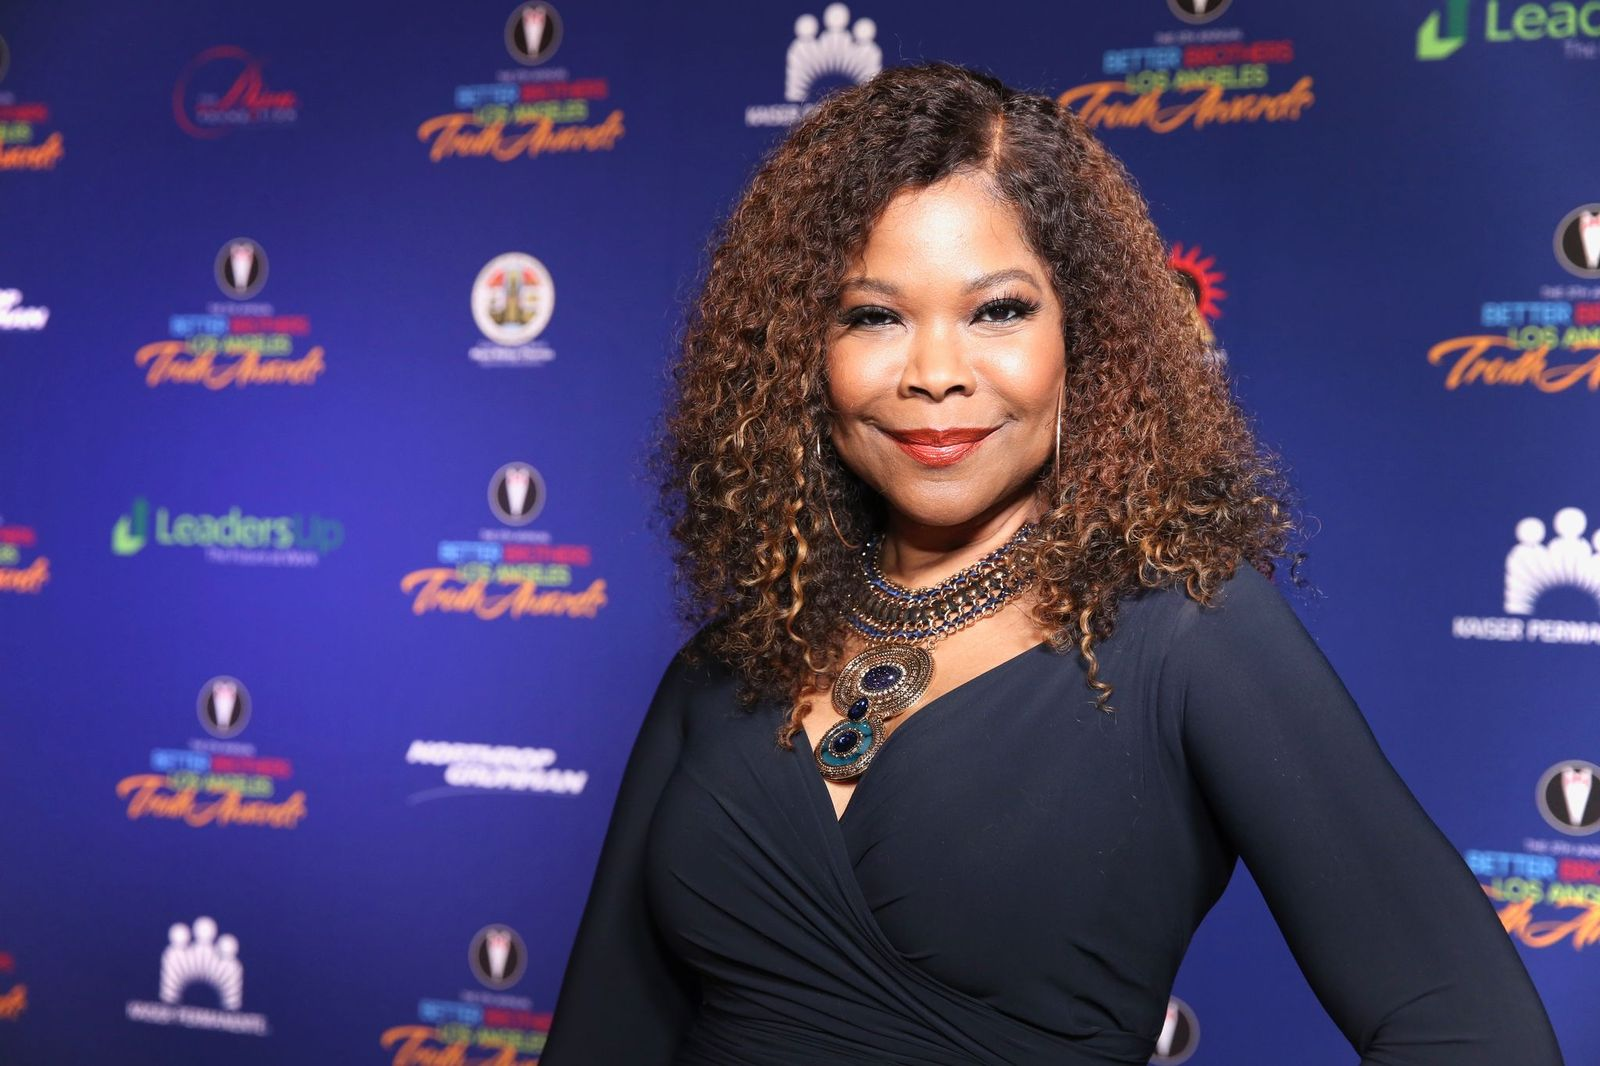 Angela Robinson at the 5th Annual Truth Awards in 2019   Source: Getty Images